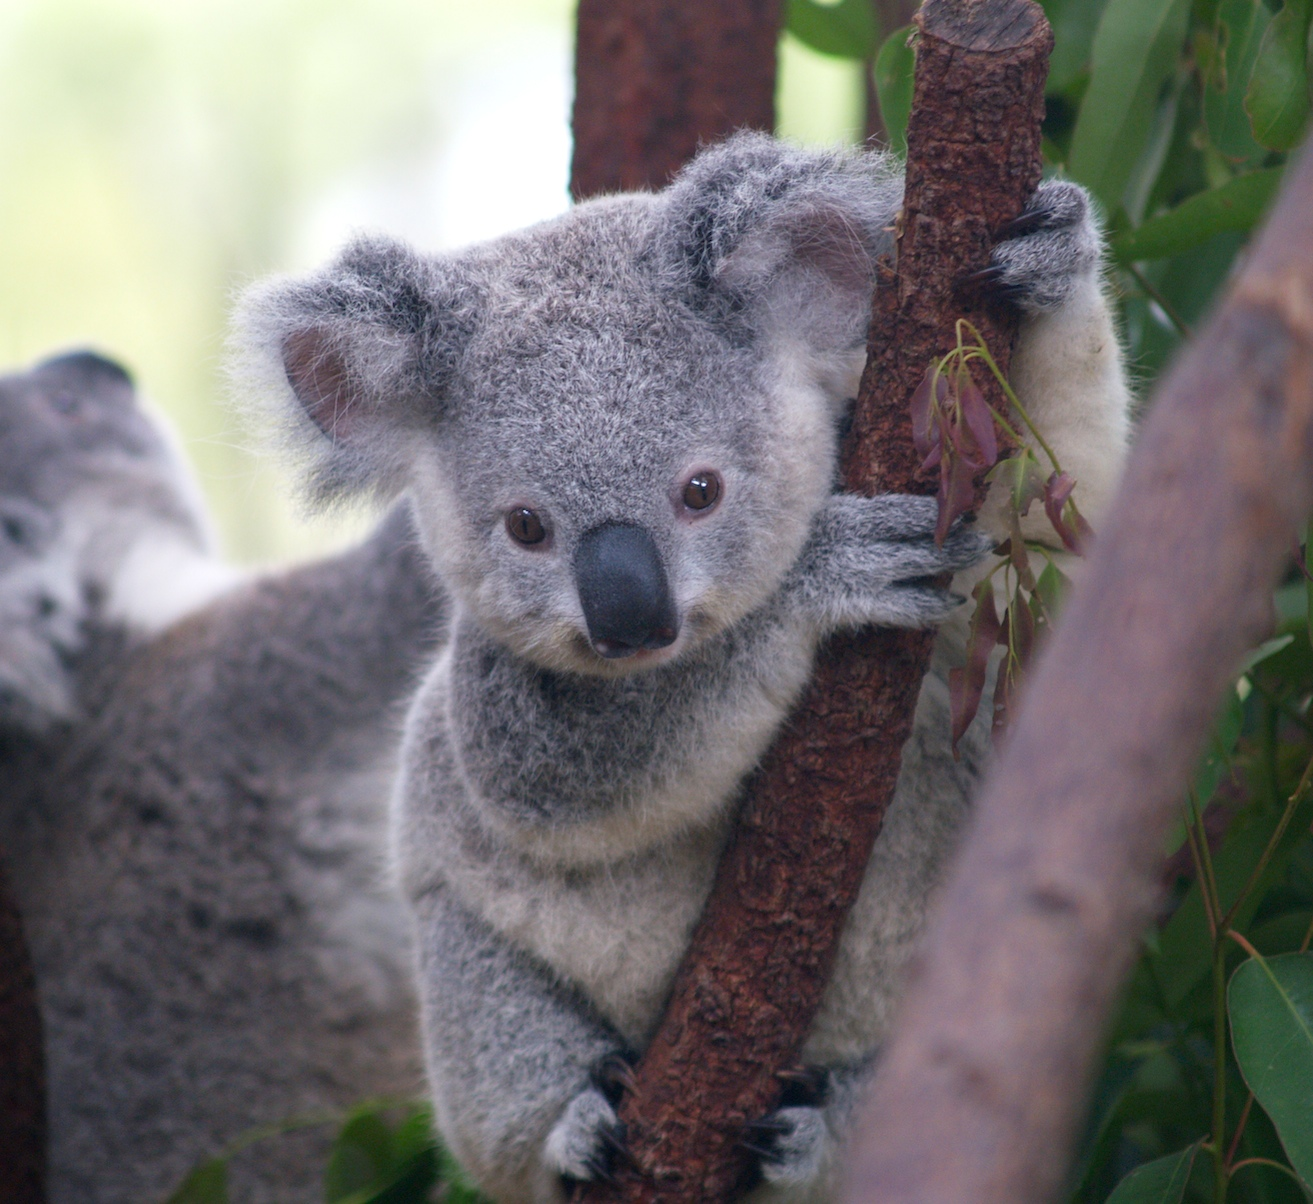 Koalas are one of the cutes animals!!!!! (In my mind)